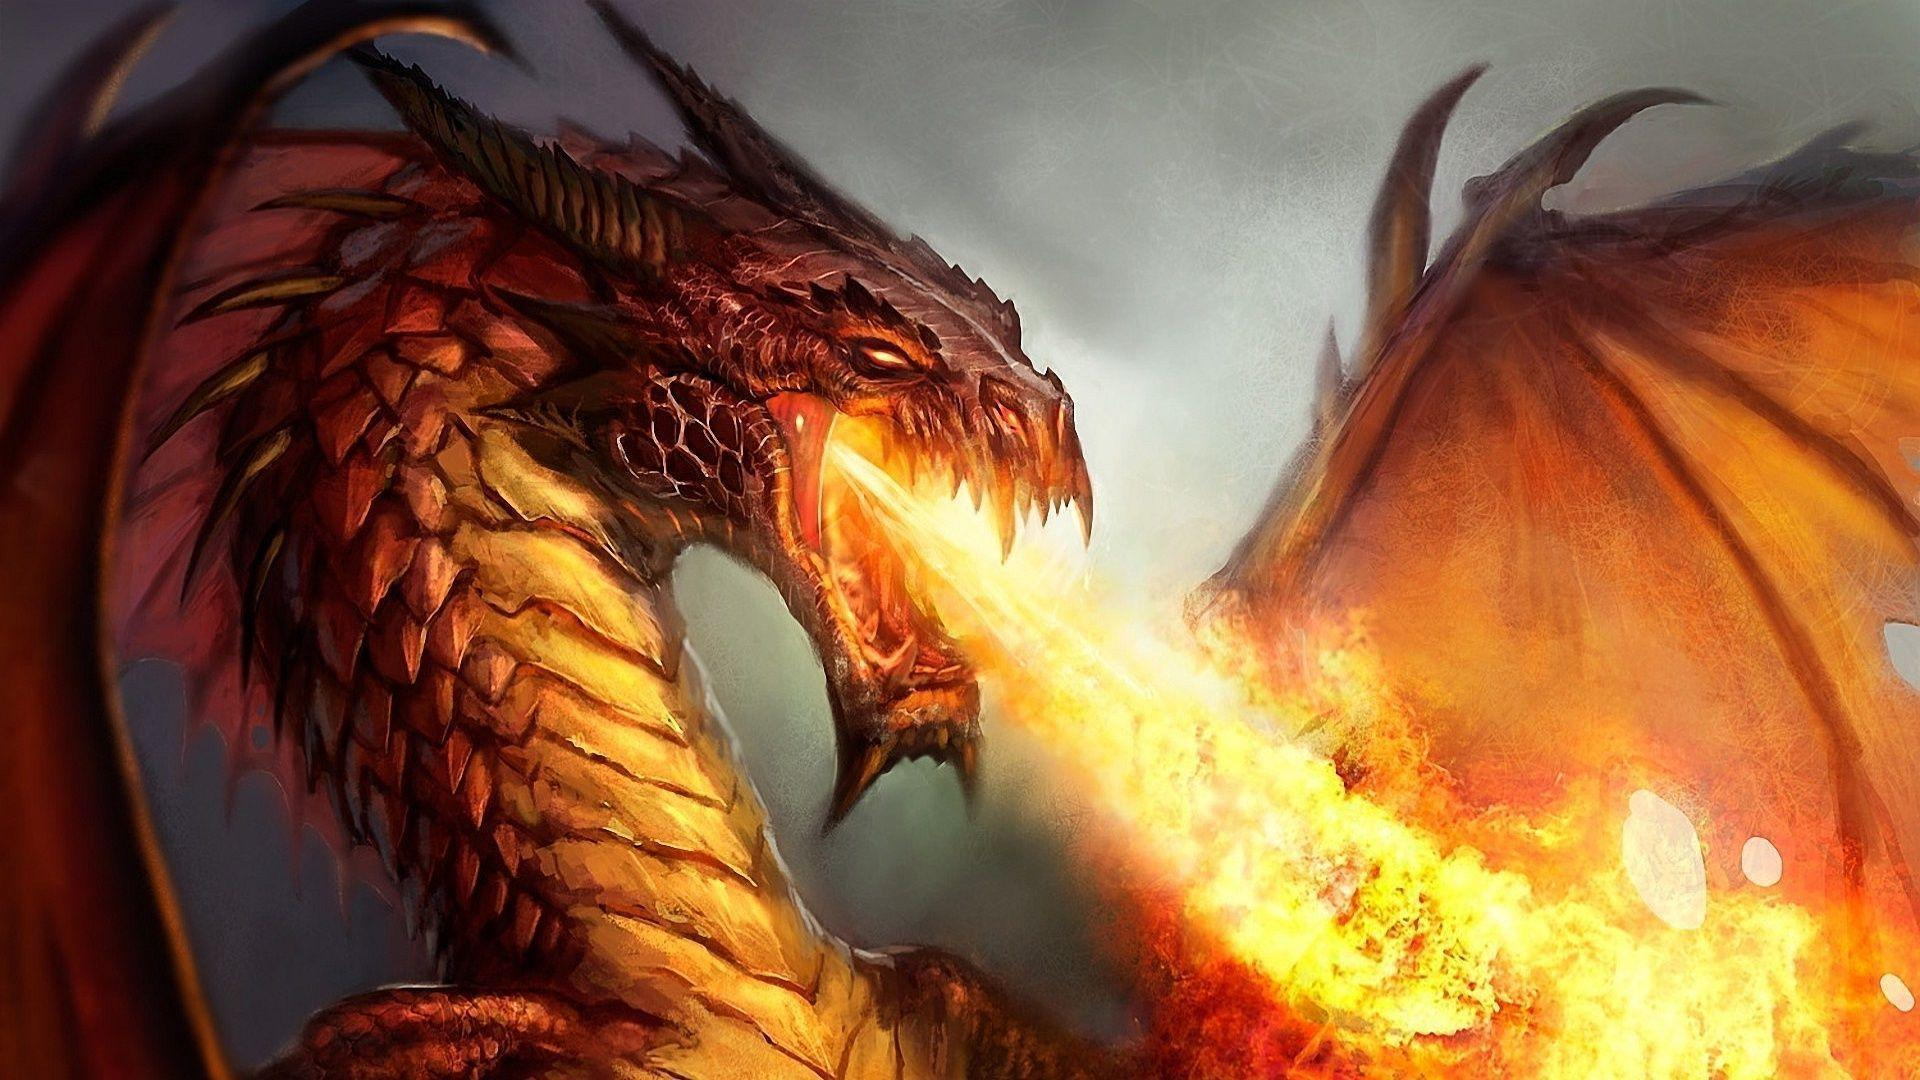 Wallpapers For Fire Dragon 3d